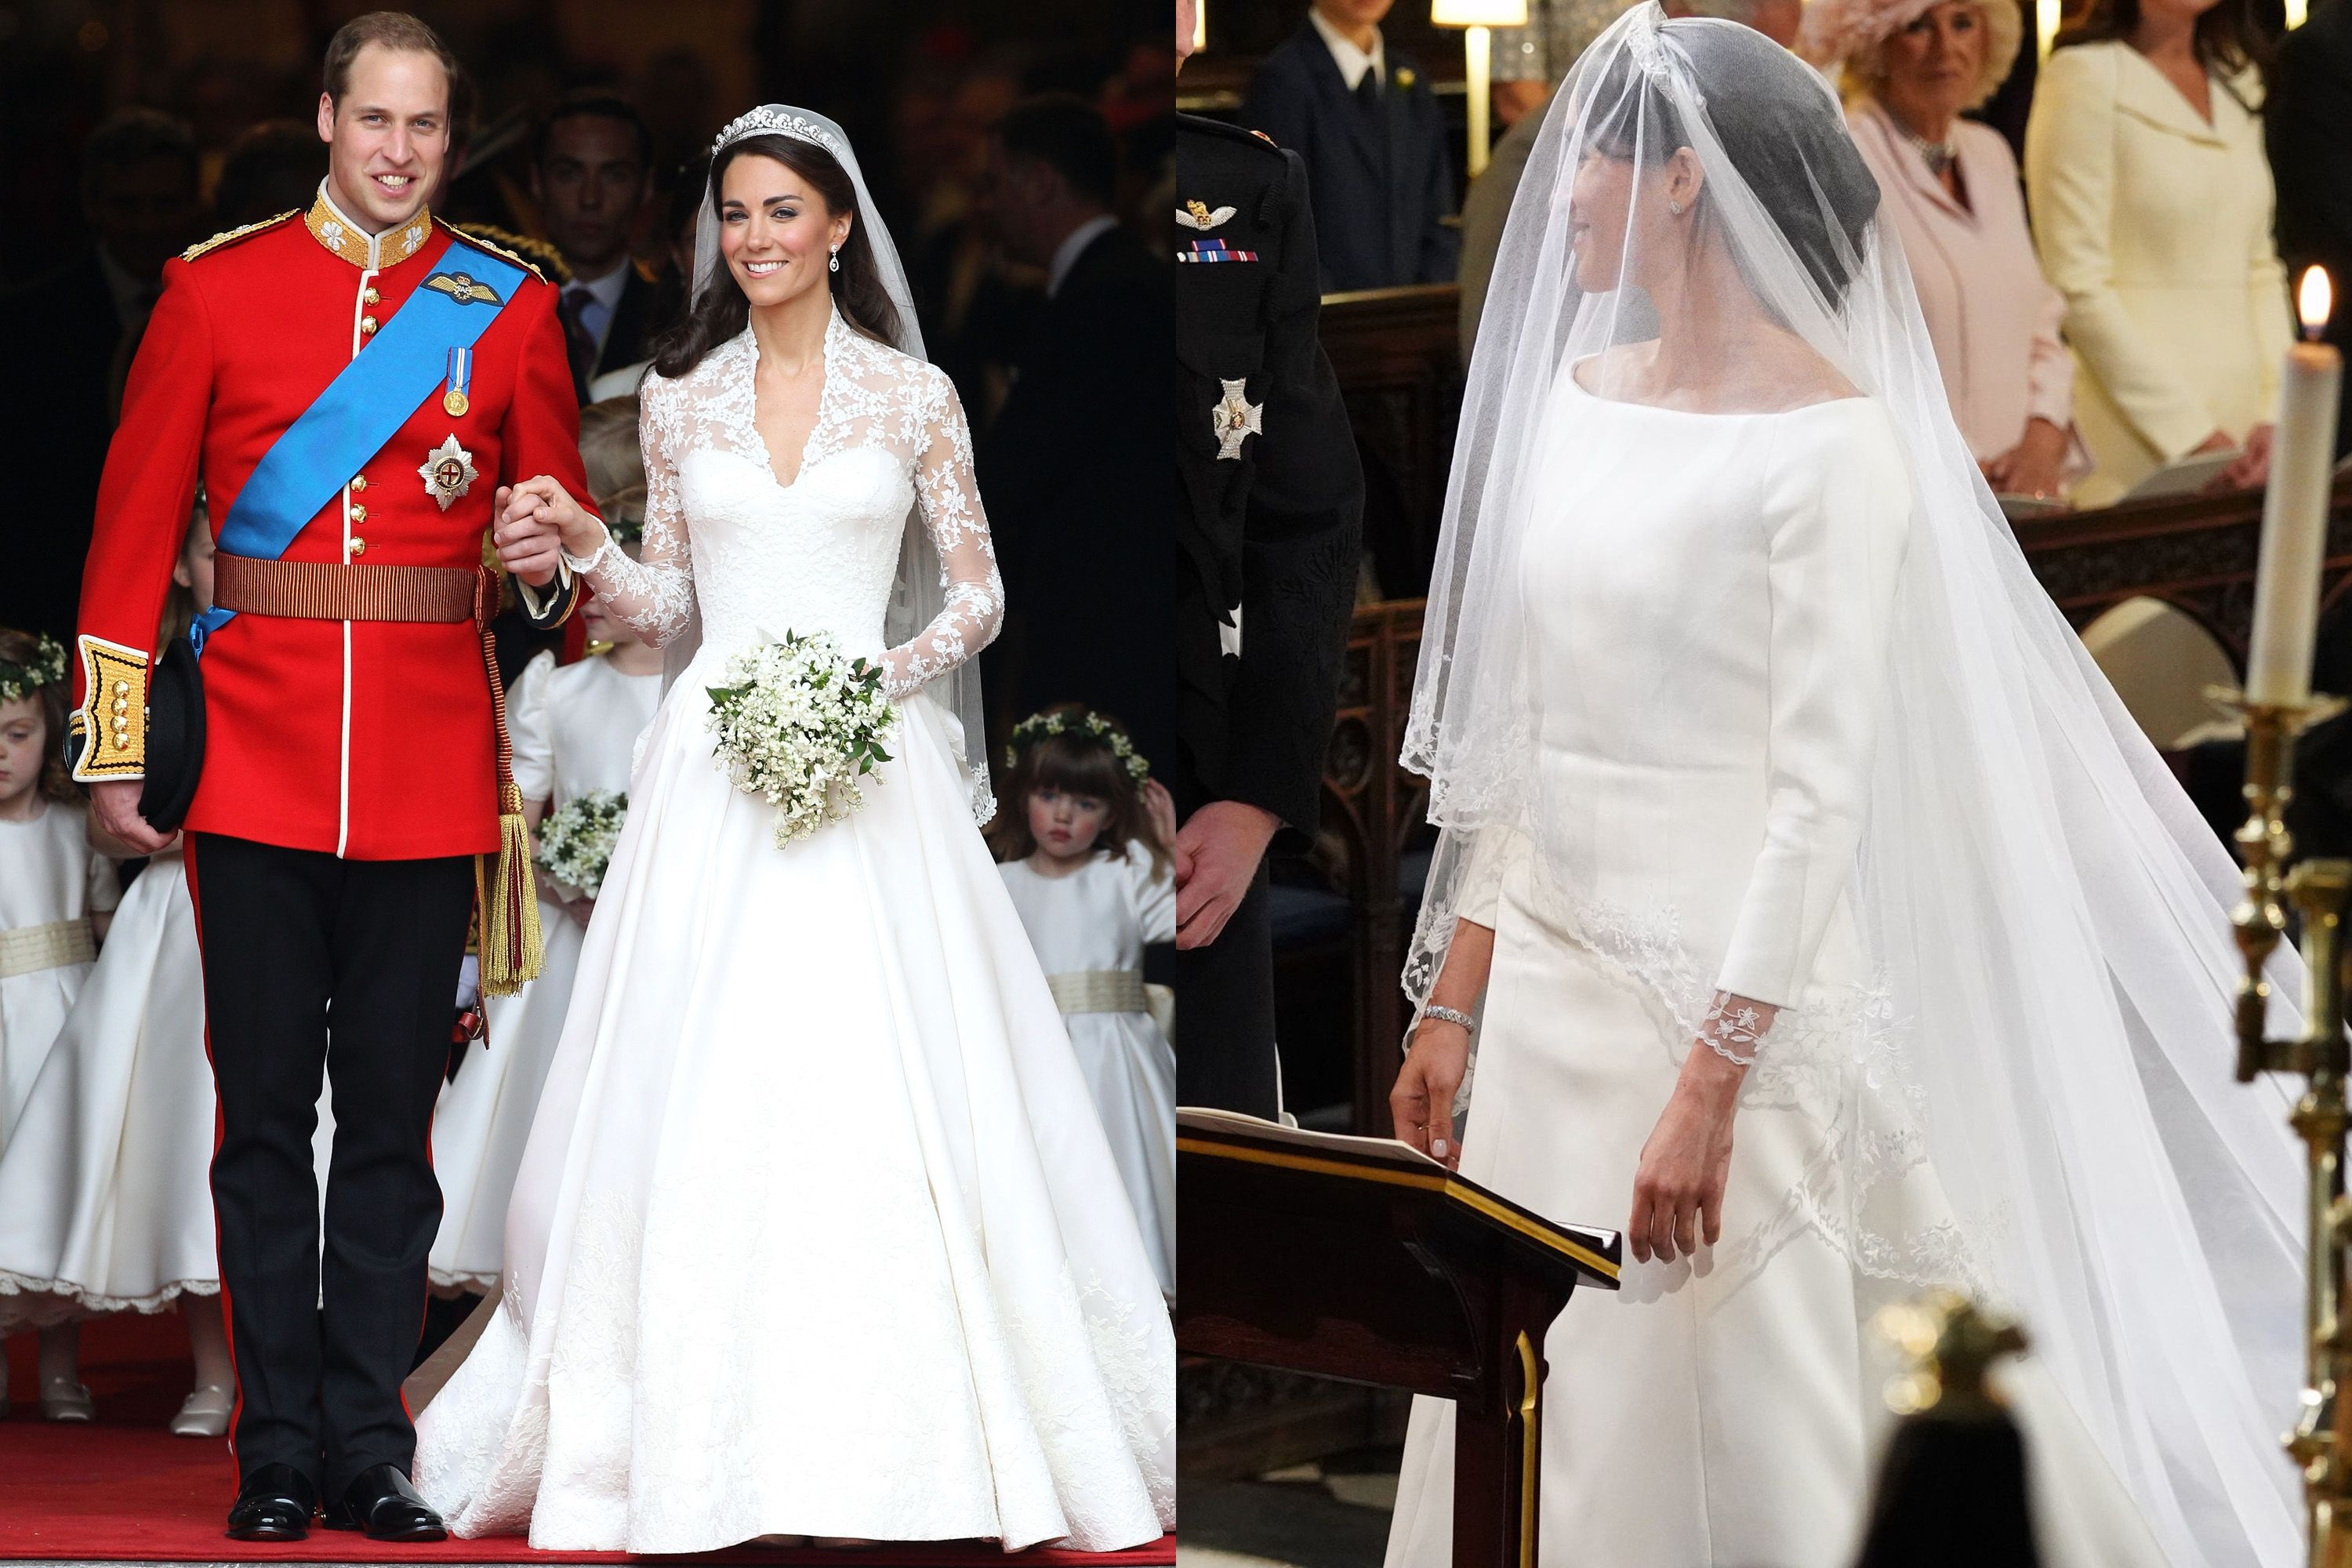 b4c30ce2b70 A look at the similarities—and major differences—between Kate and Meghan s  wedding gowns.